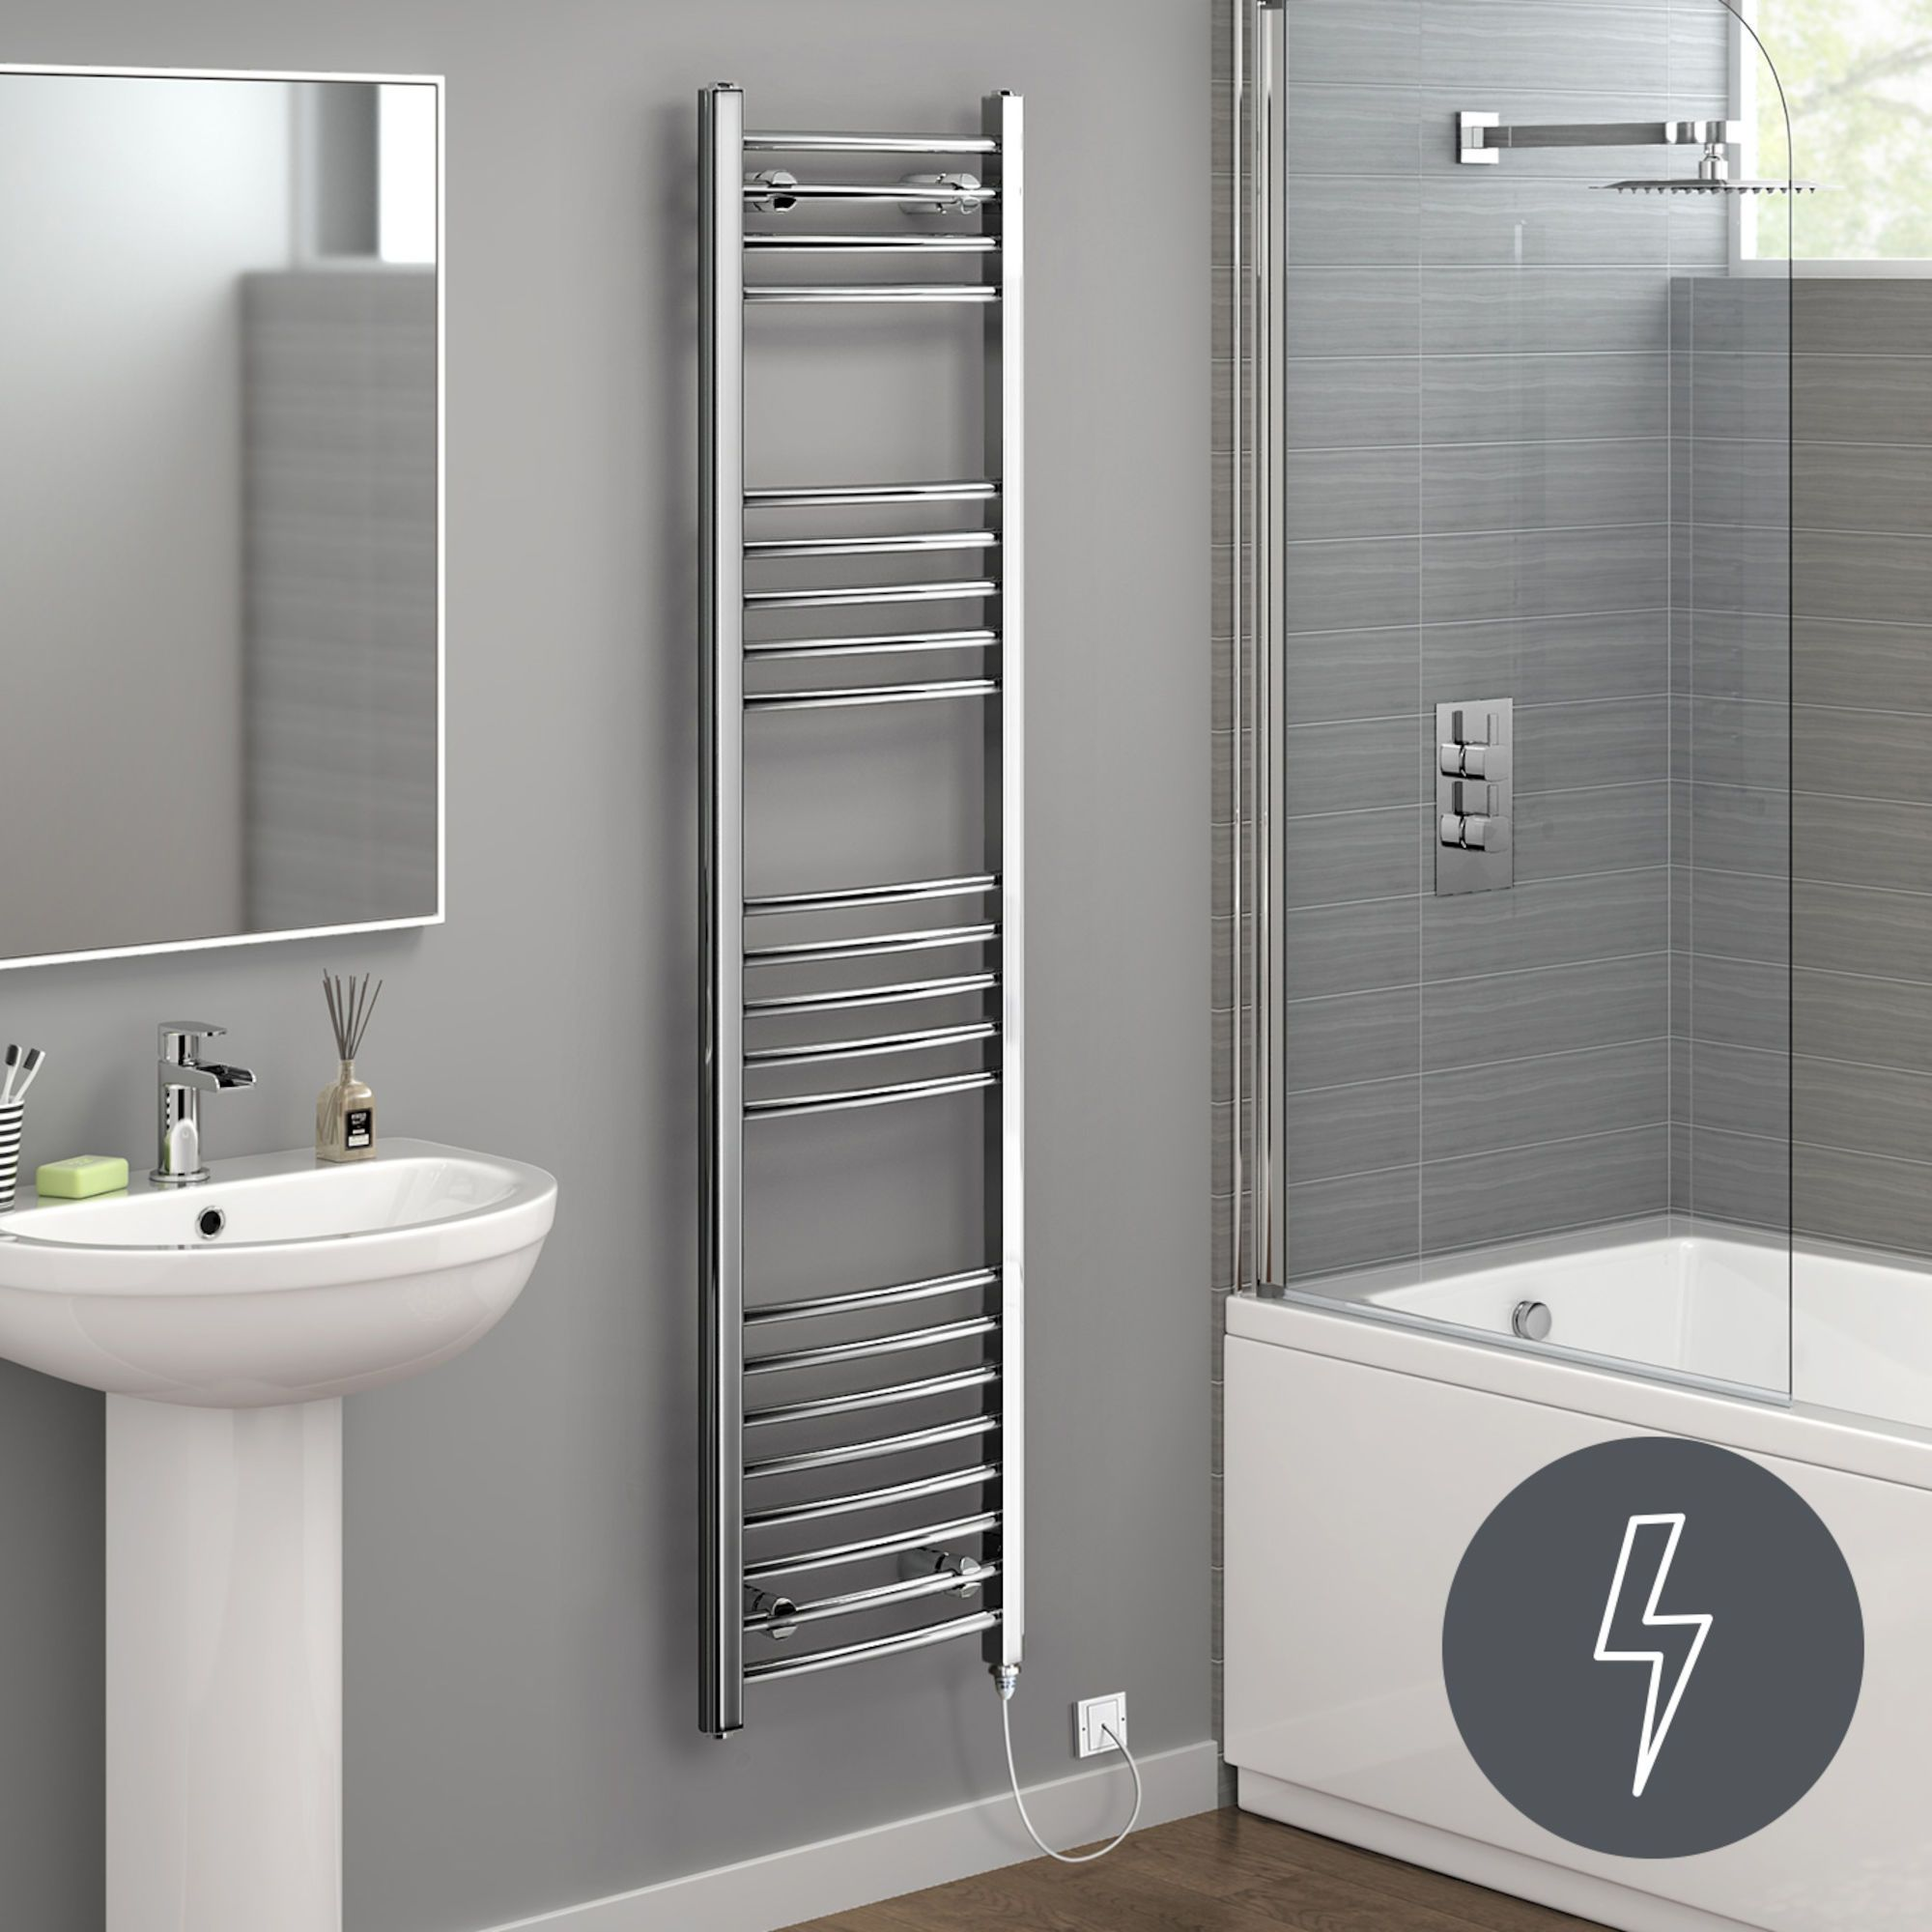 Badheizkörper Verchromt 1600x400mm Chrome Curved Rail Electric Towel Radiator Towel